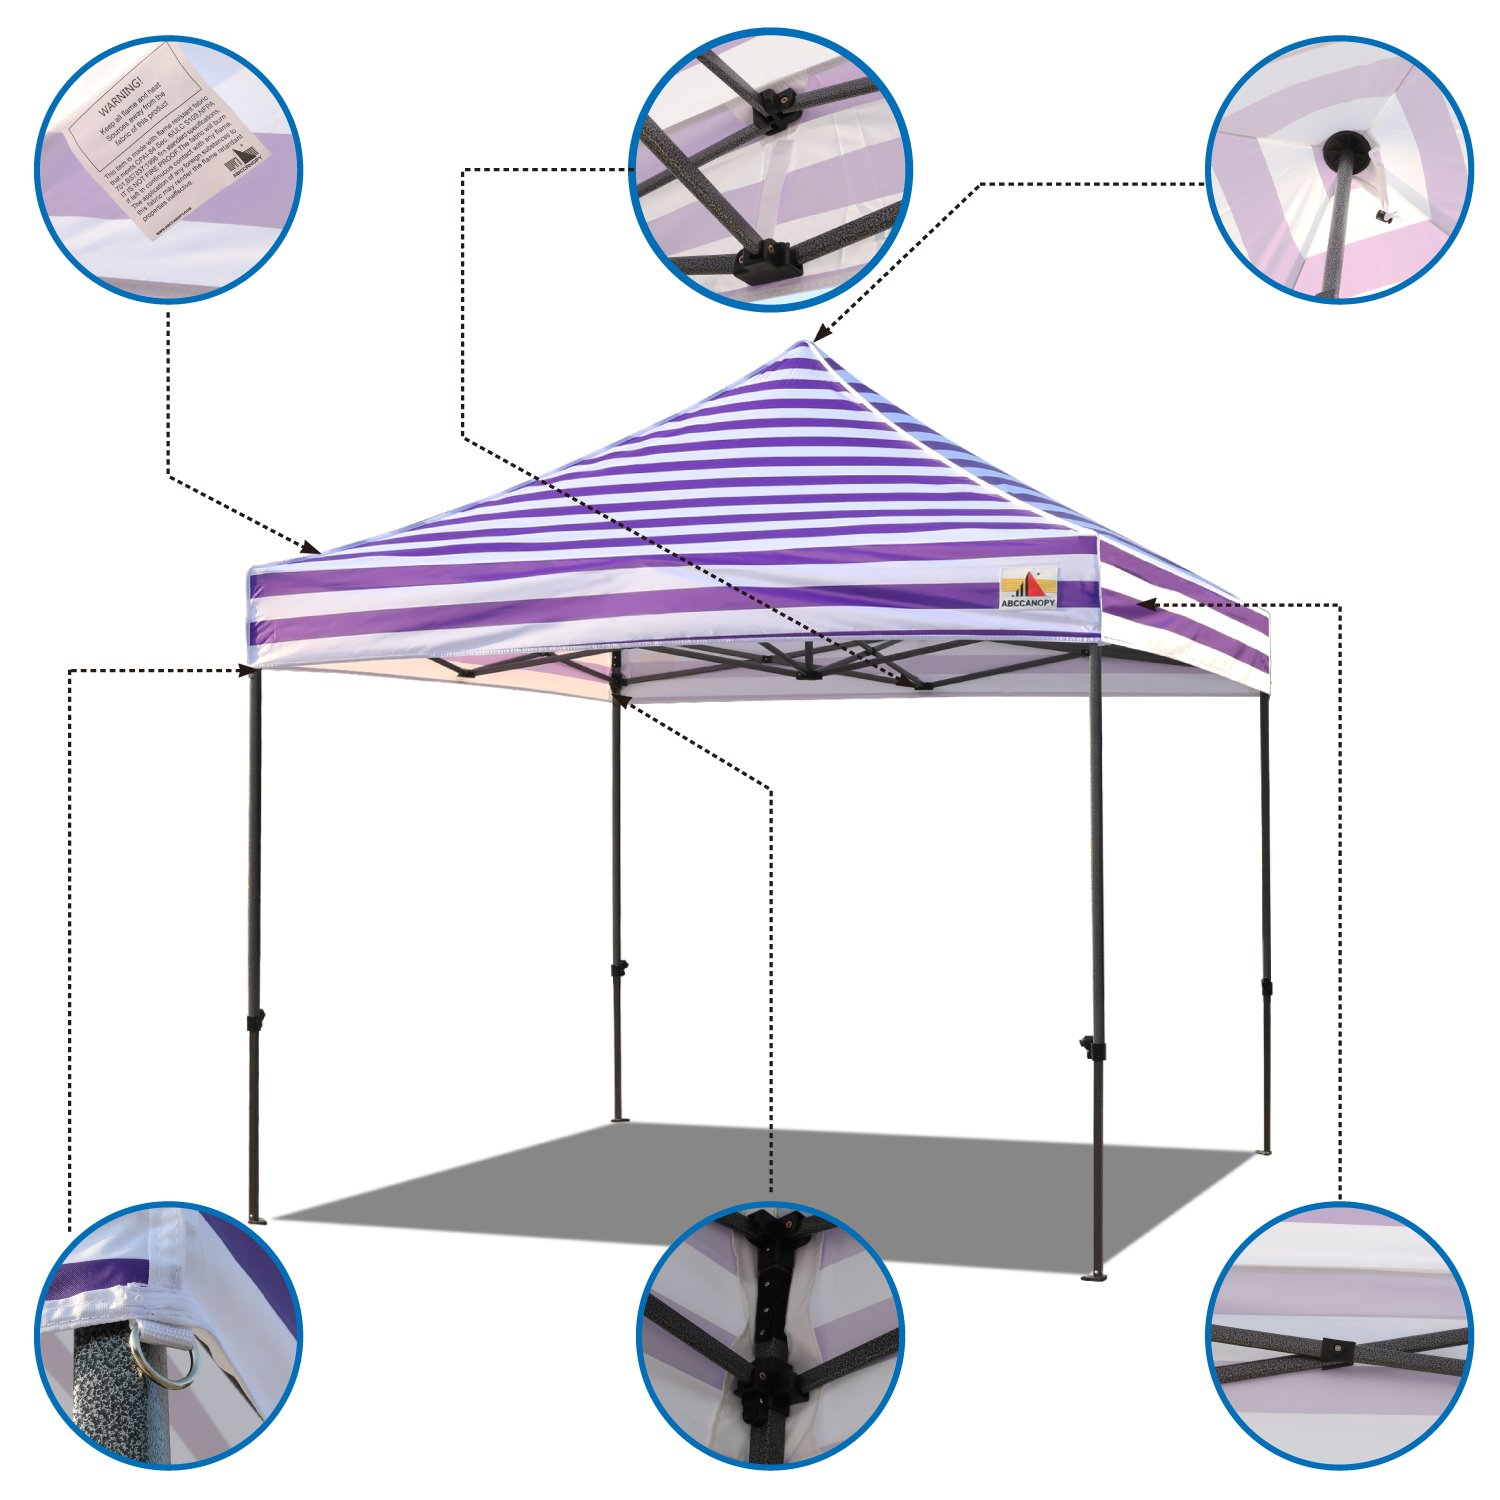 10x10 ez pop up tent canopy replacement top